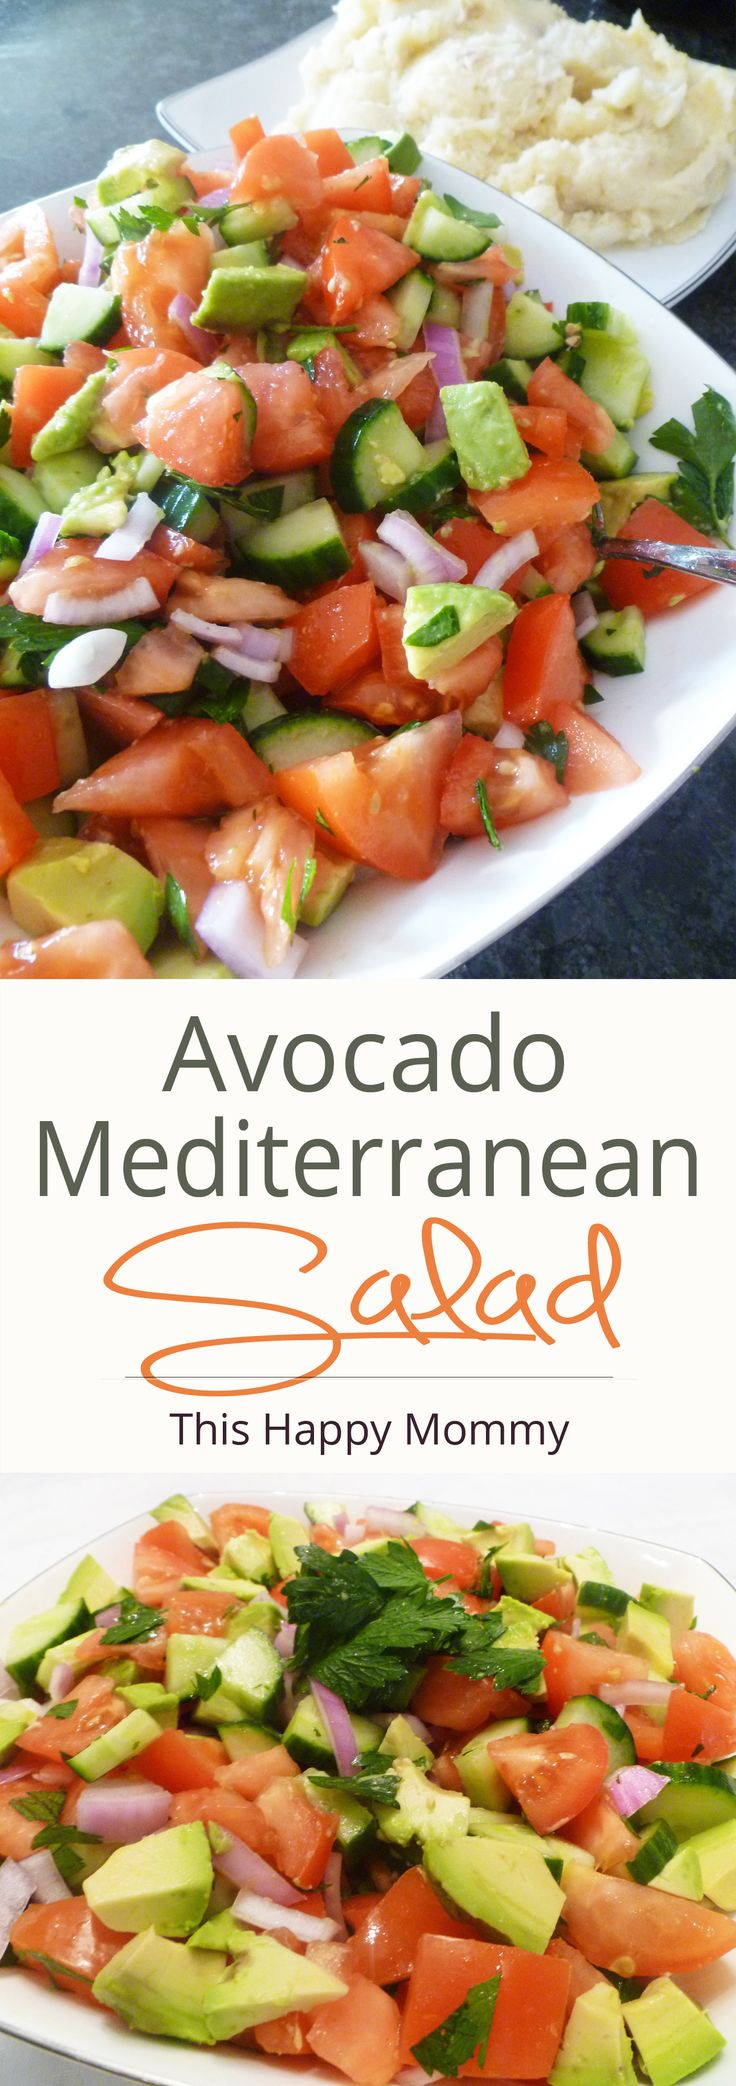 Tomatoes, cucumbers, onions and avocados with a zesty lemon mustard dressing.   thishappymommy.com